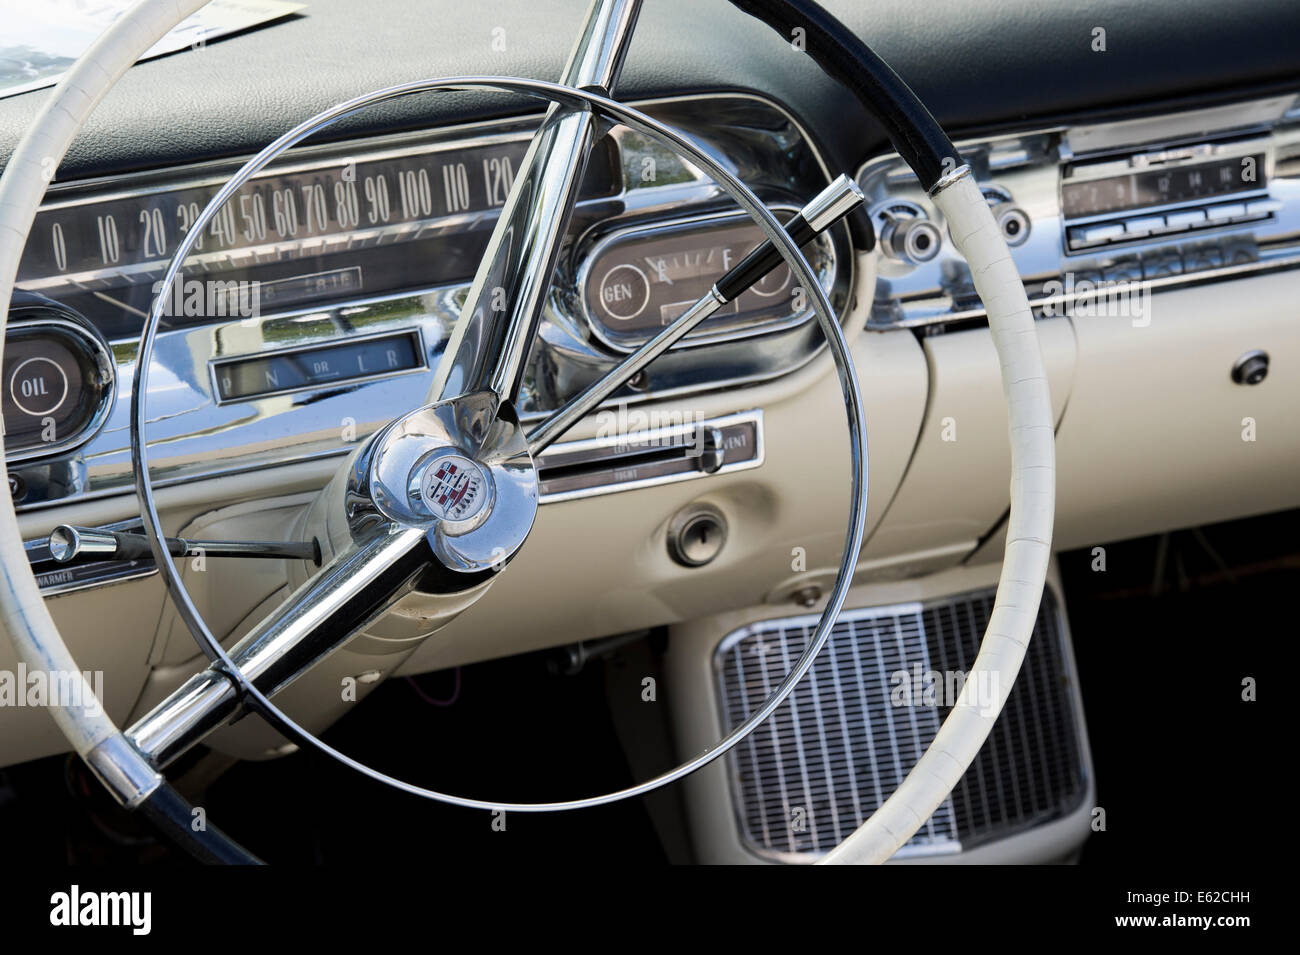 1950s cadillac dashboard and interior abstract classic american car stock photo 72583213 alamy. Black Bedroom Furniture Sets. Home Design Ideas